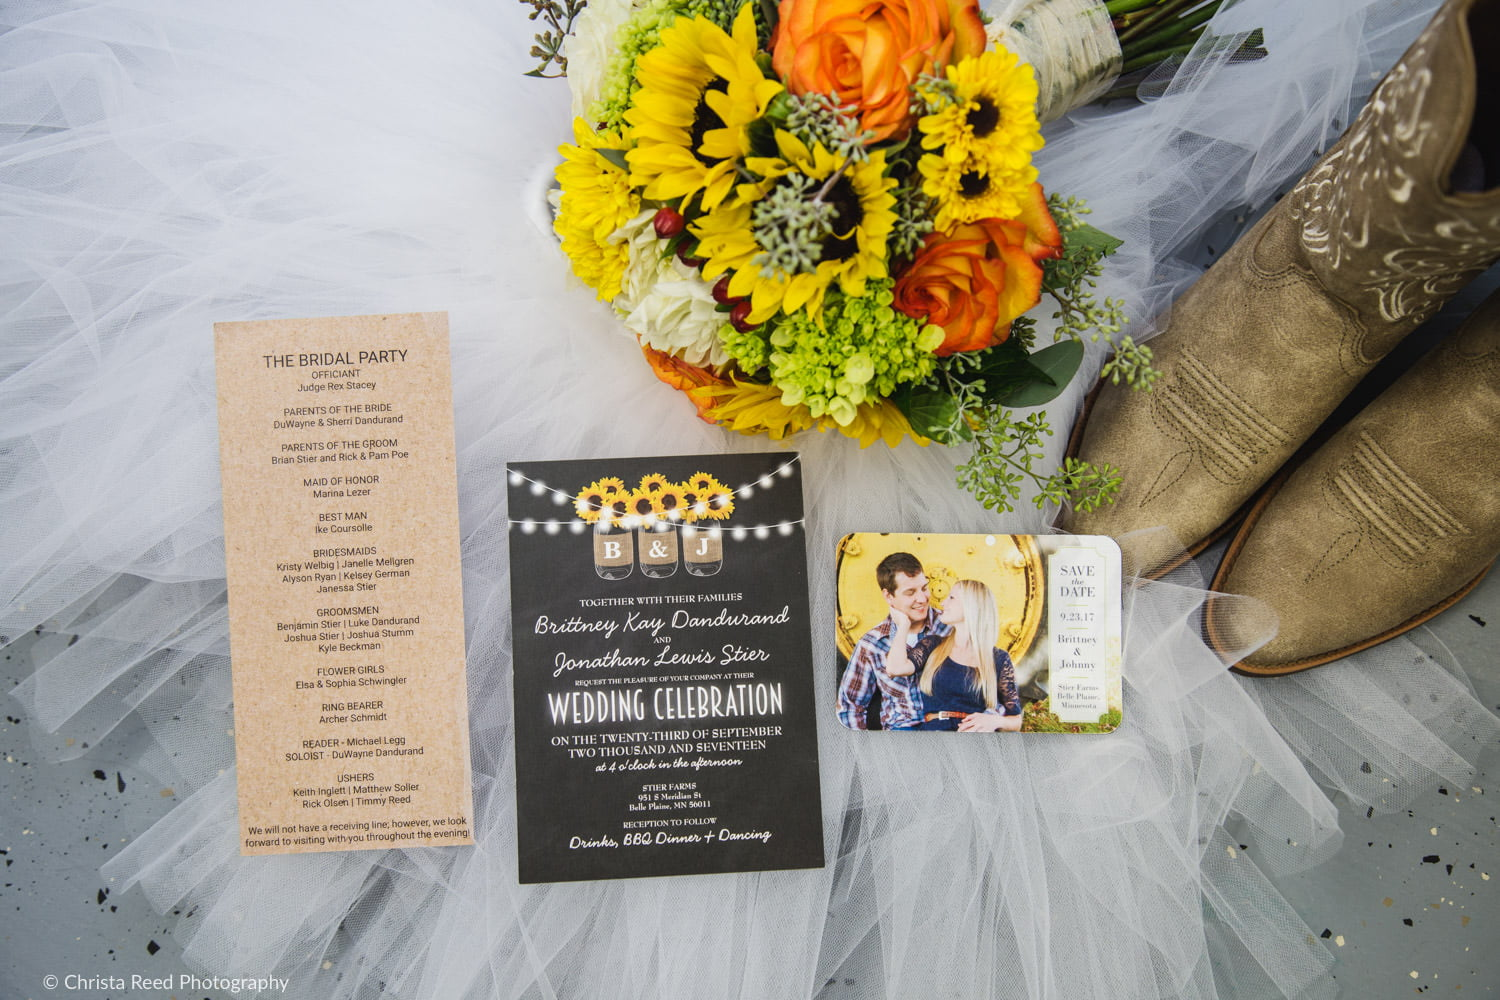 custom wedding invitations and sunflower bouquet for a farm wedding in minnesota